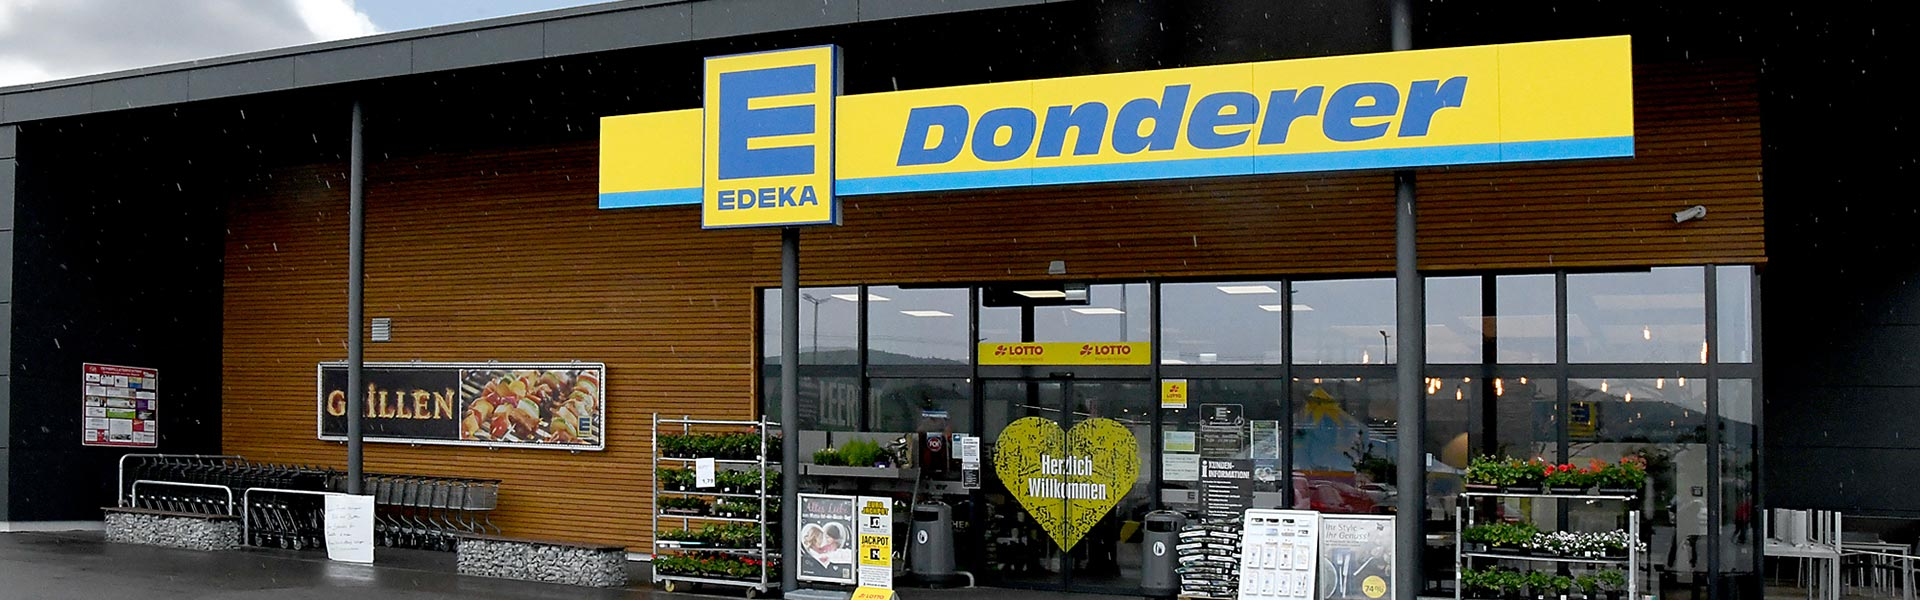 EDEKA Donderer in Bettringen